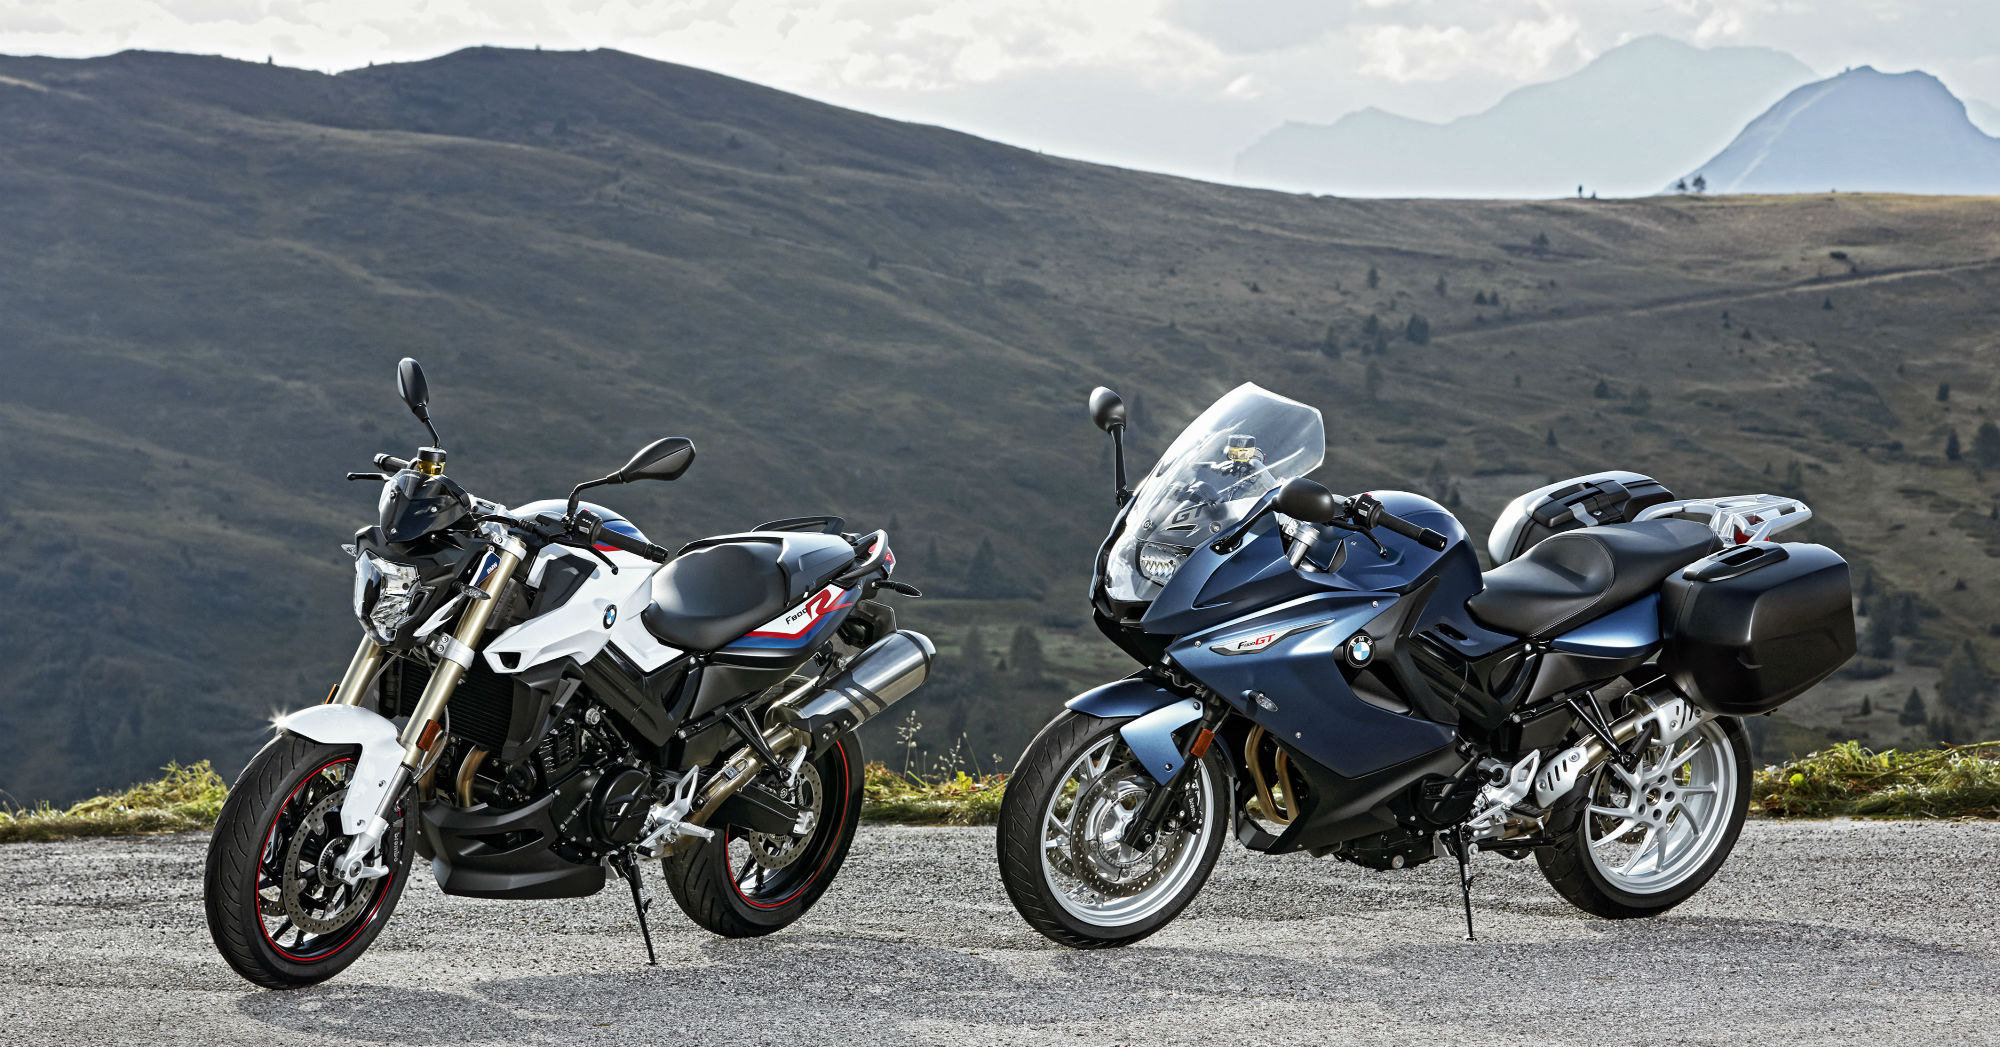 BMW North America announces recall of bikes due to equipment issues